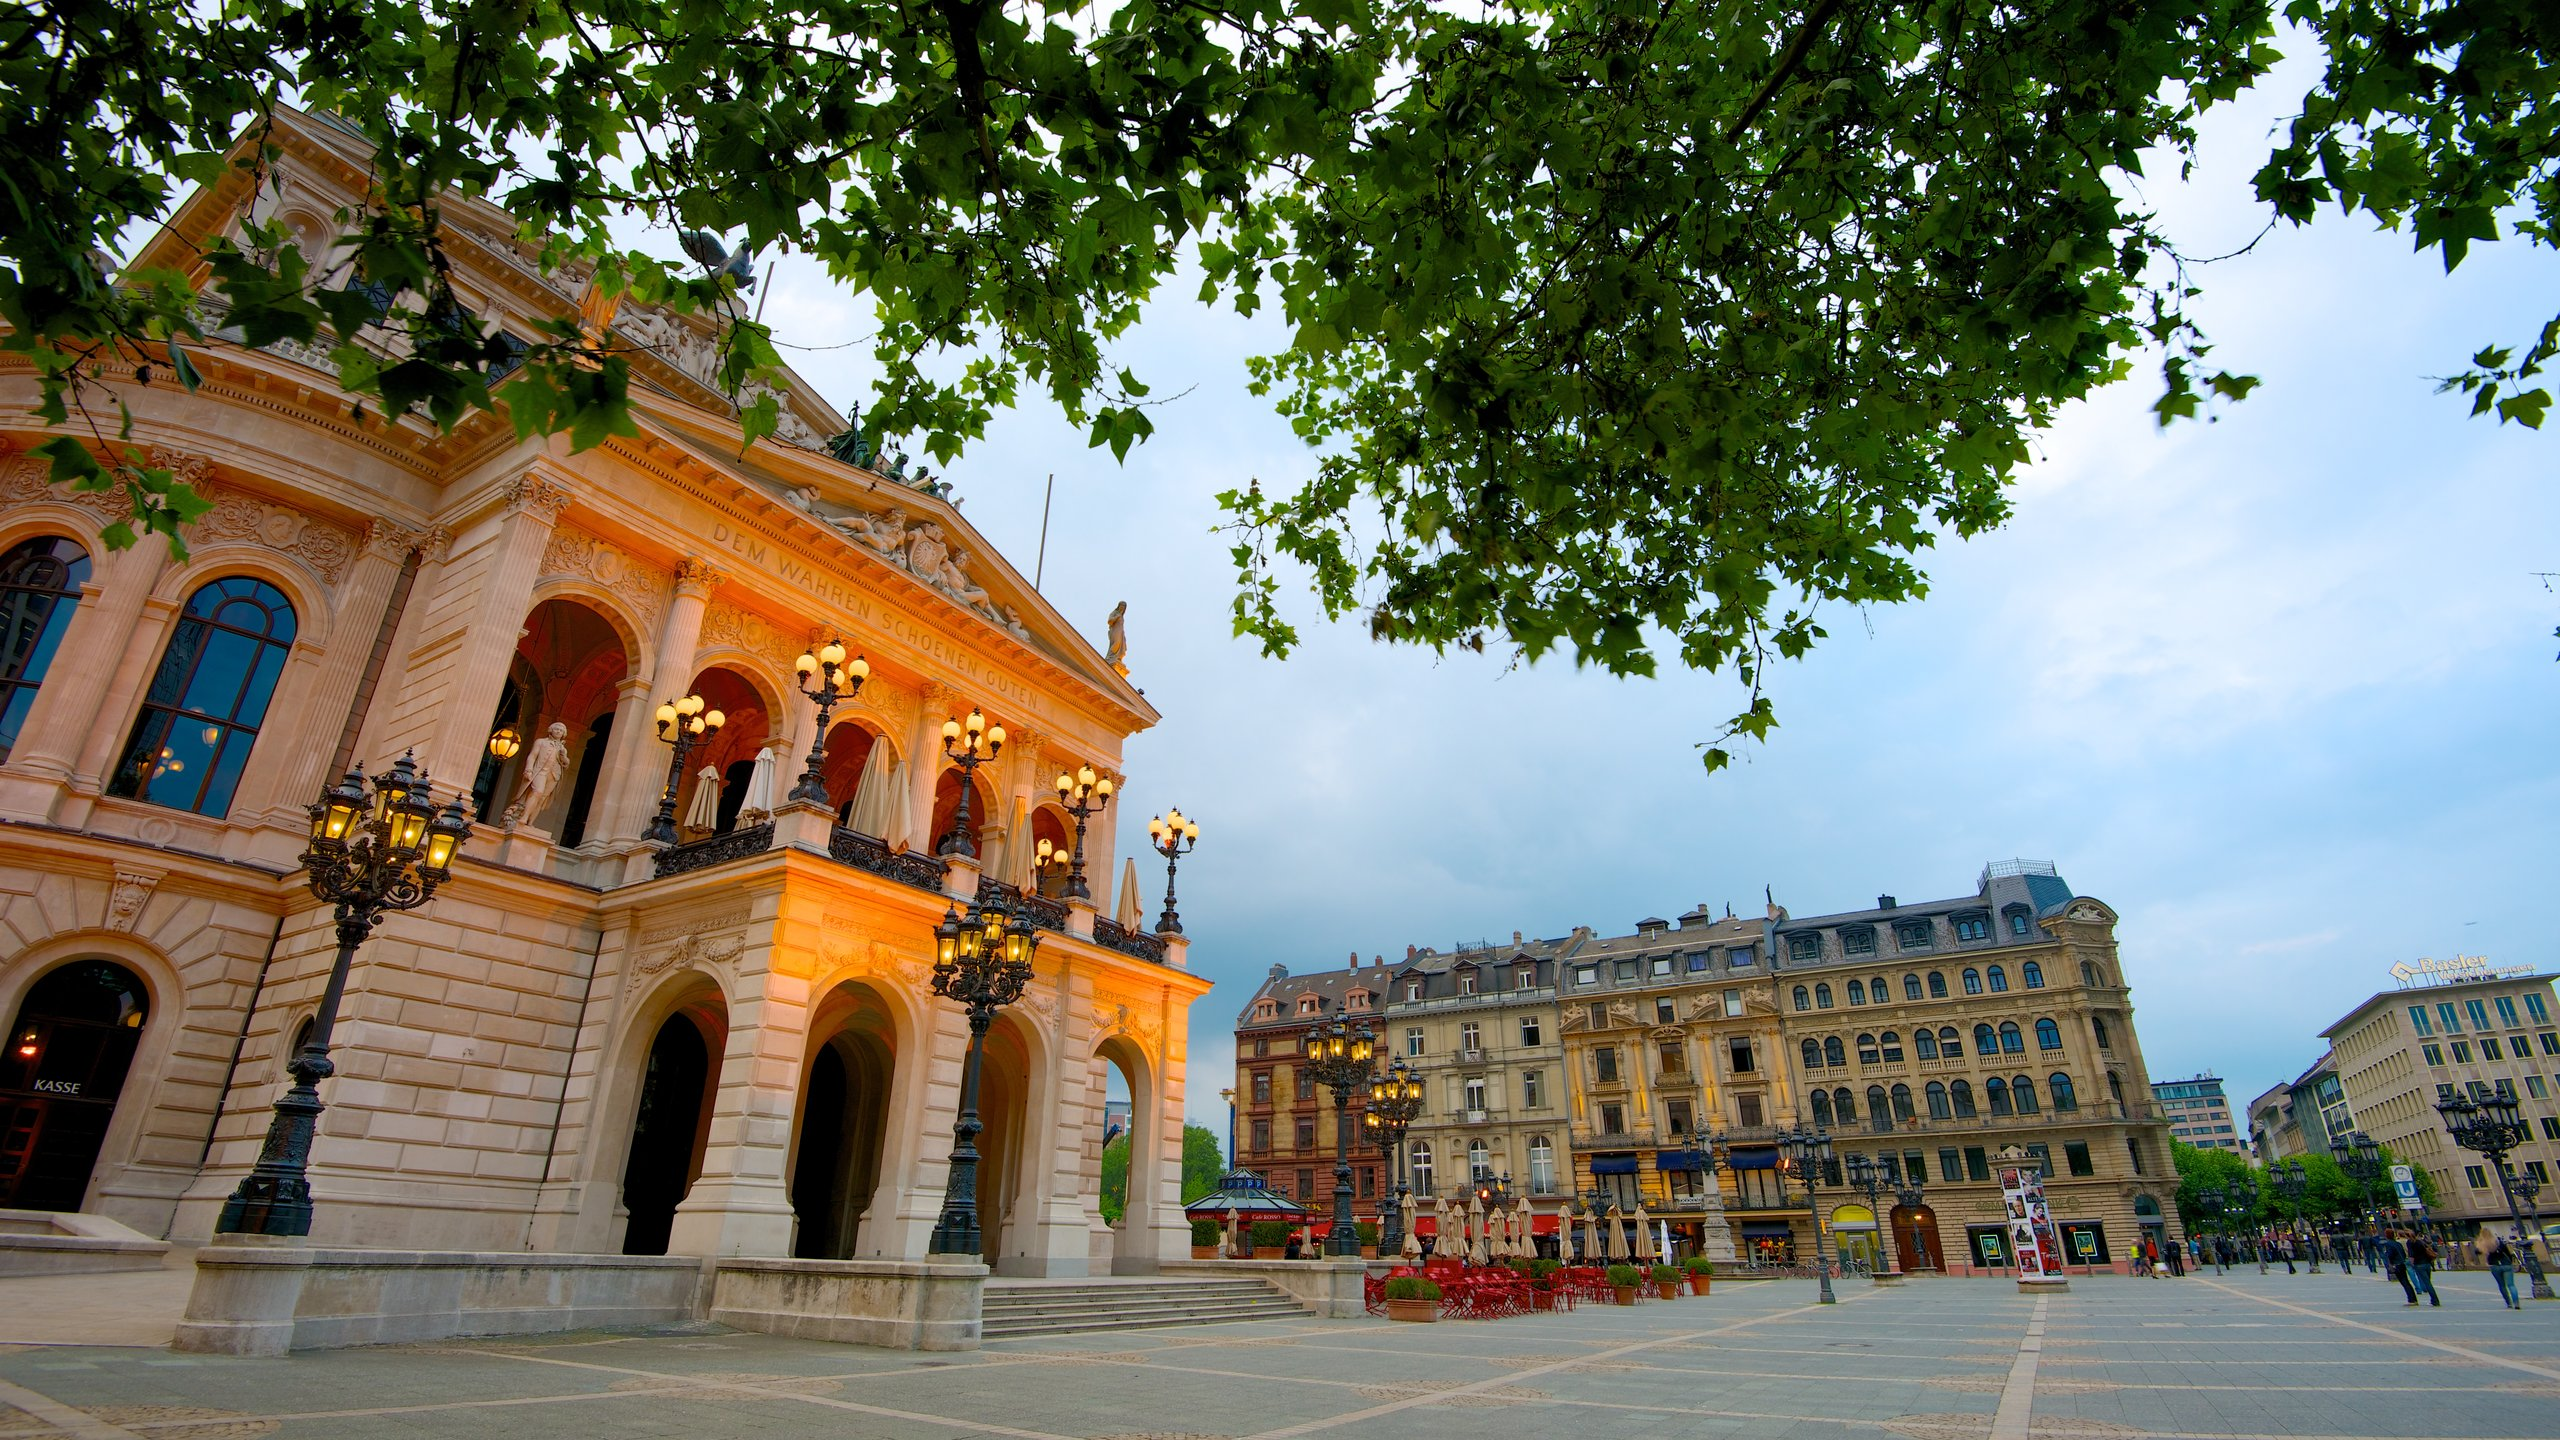 Frankfurt's former opera house today plays host to world-class classical music ensembles and popular musicals in its grand concert hall.